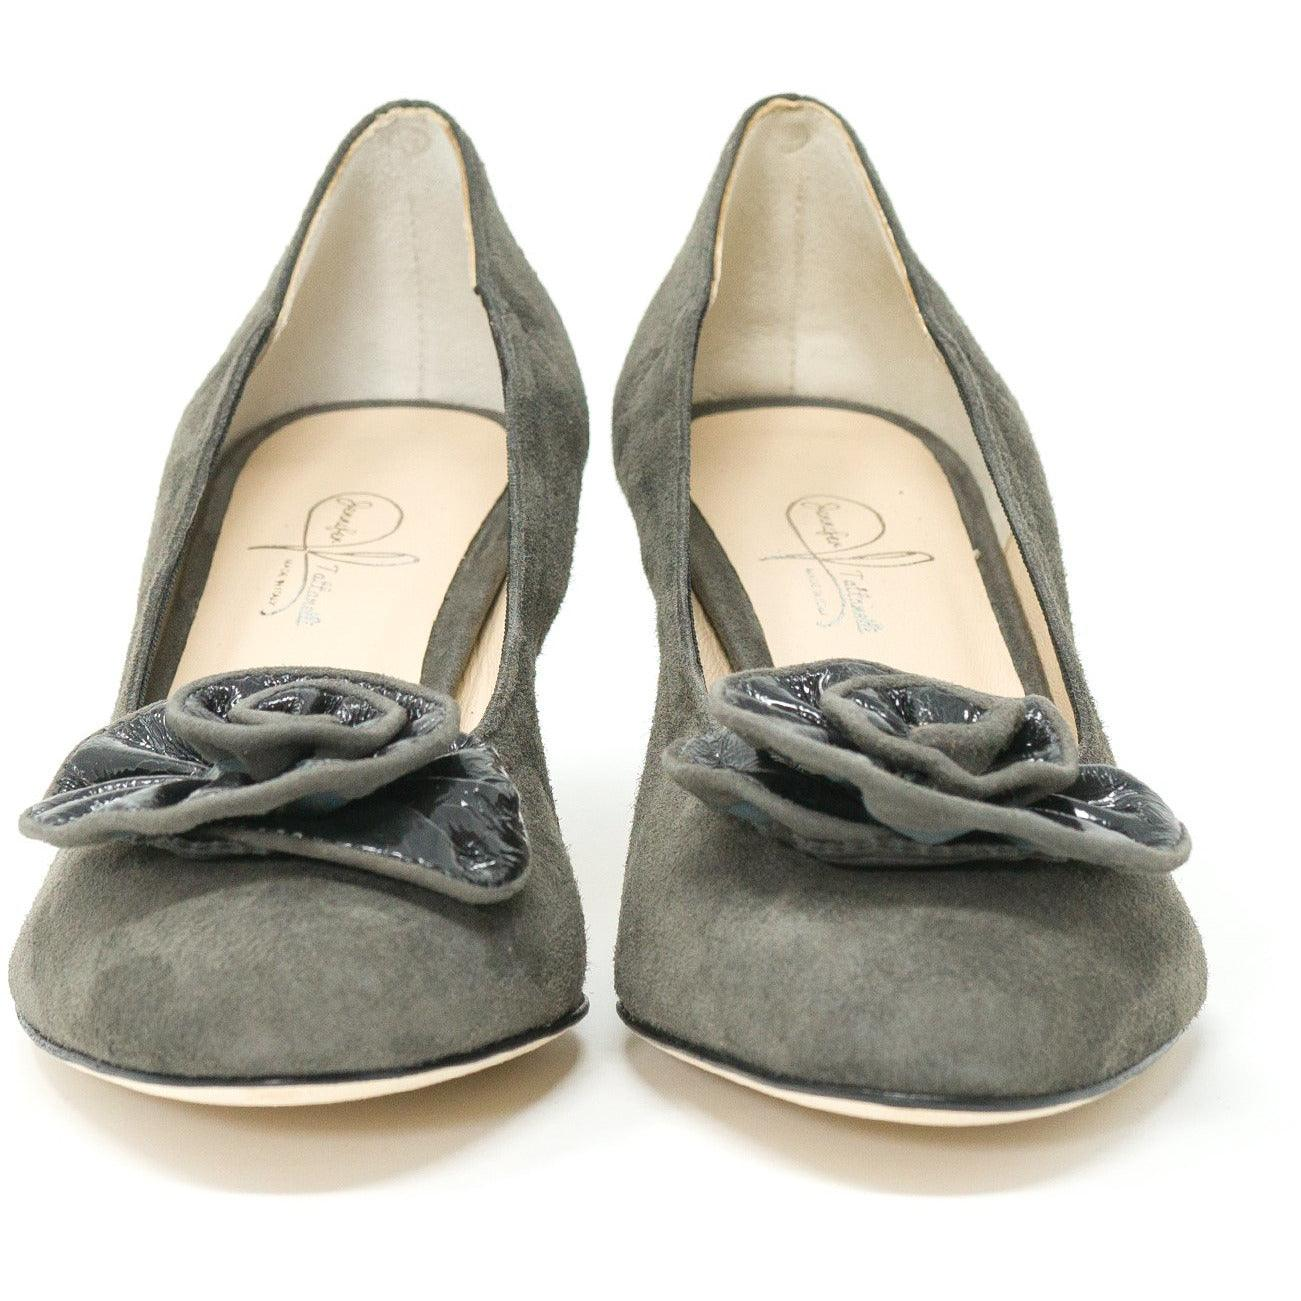 Women's Round Toe Leather Pumps in Grey